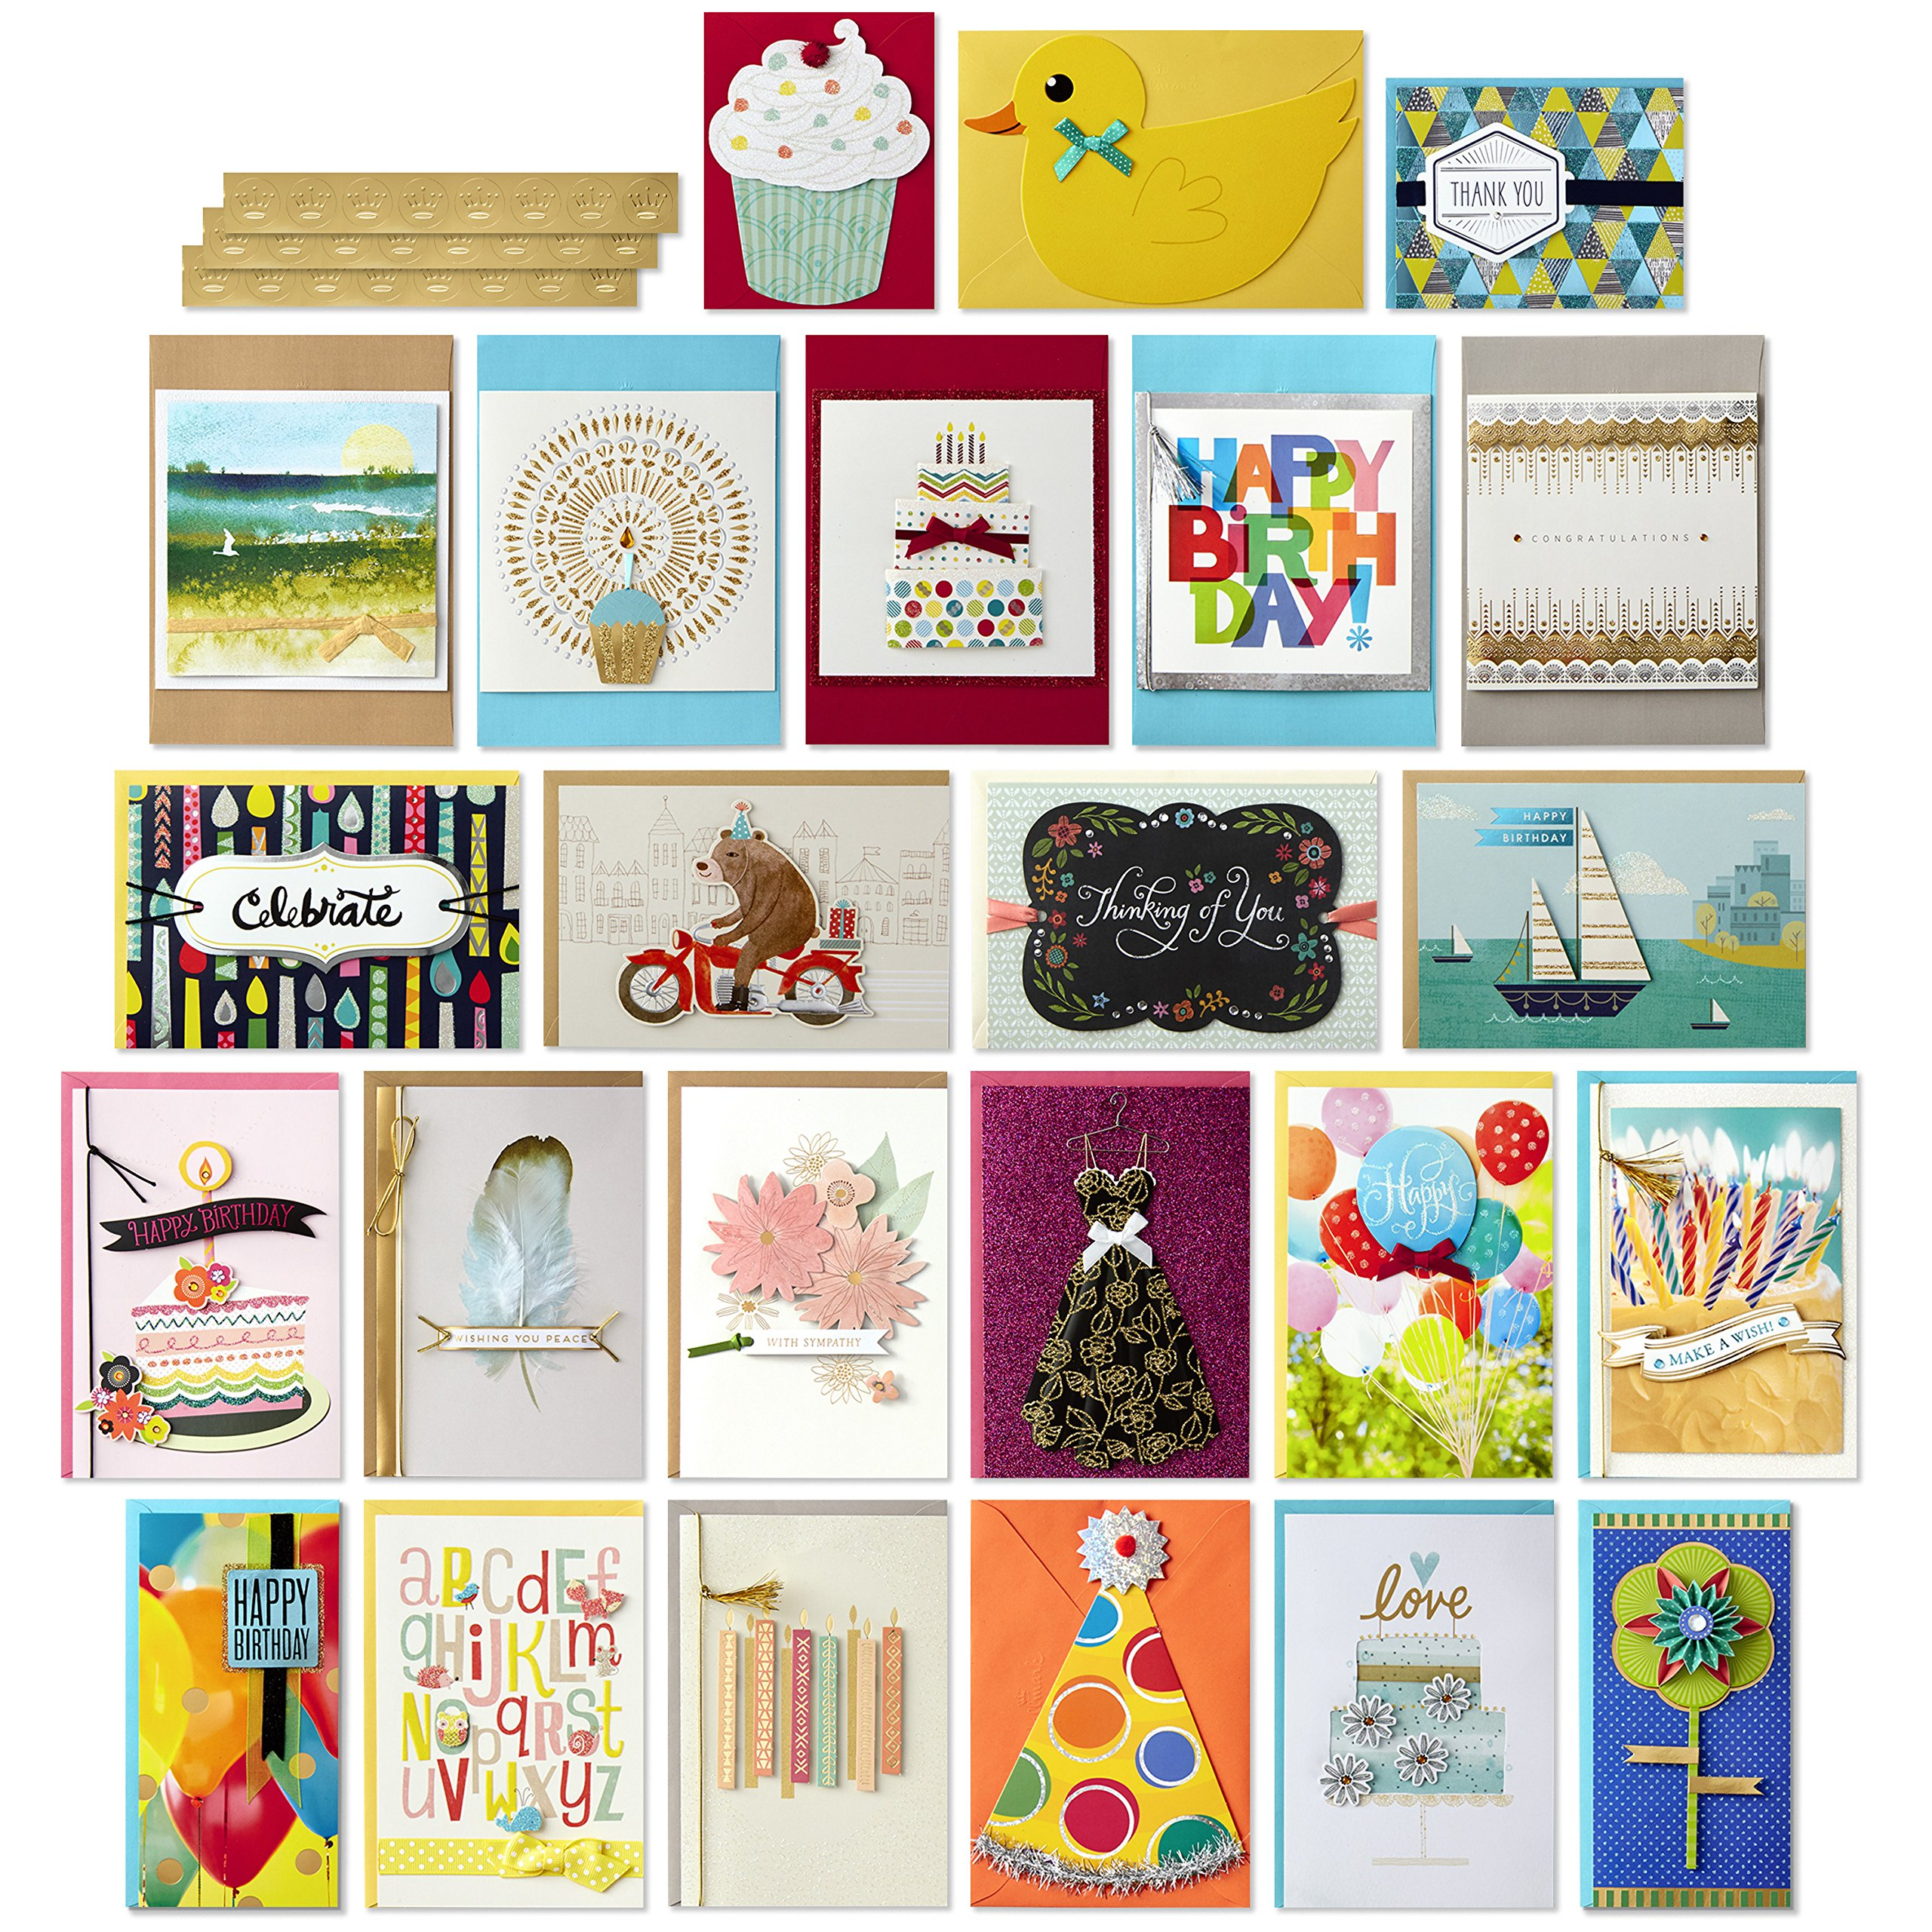 Hallmark All Occasion Handmade Boxed Greeting Card Assortment (Pack of 24)-Birthday, Baby, Wedding, Sympathy, Thinking of You, Thank You, Blank by Hallmark